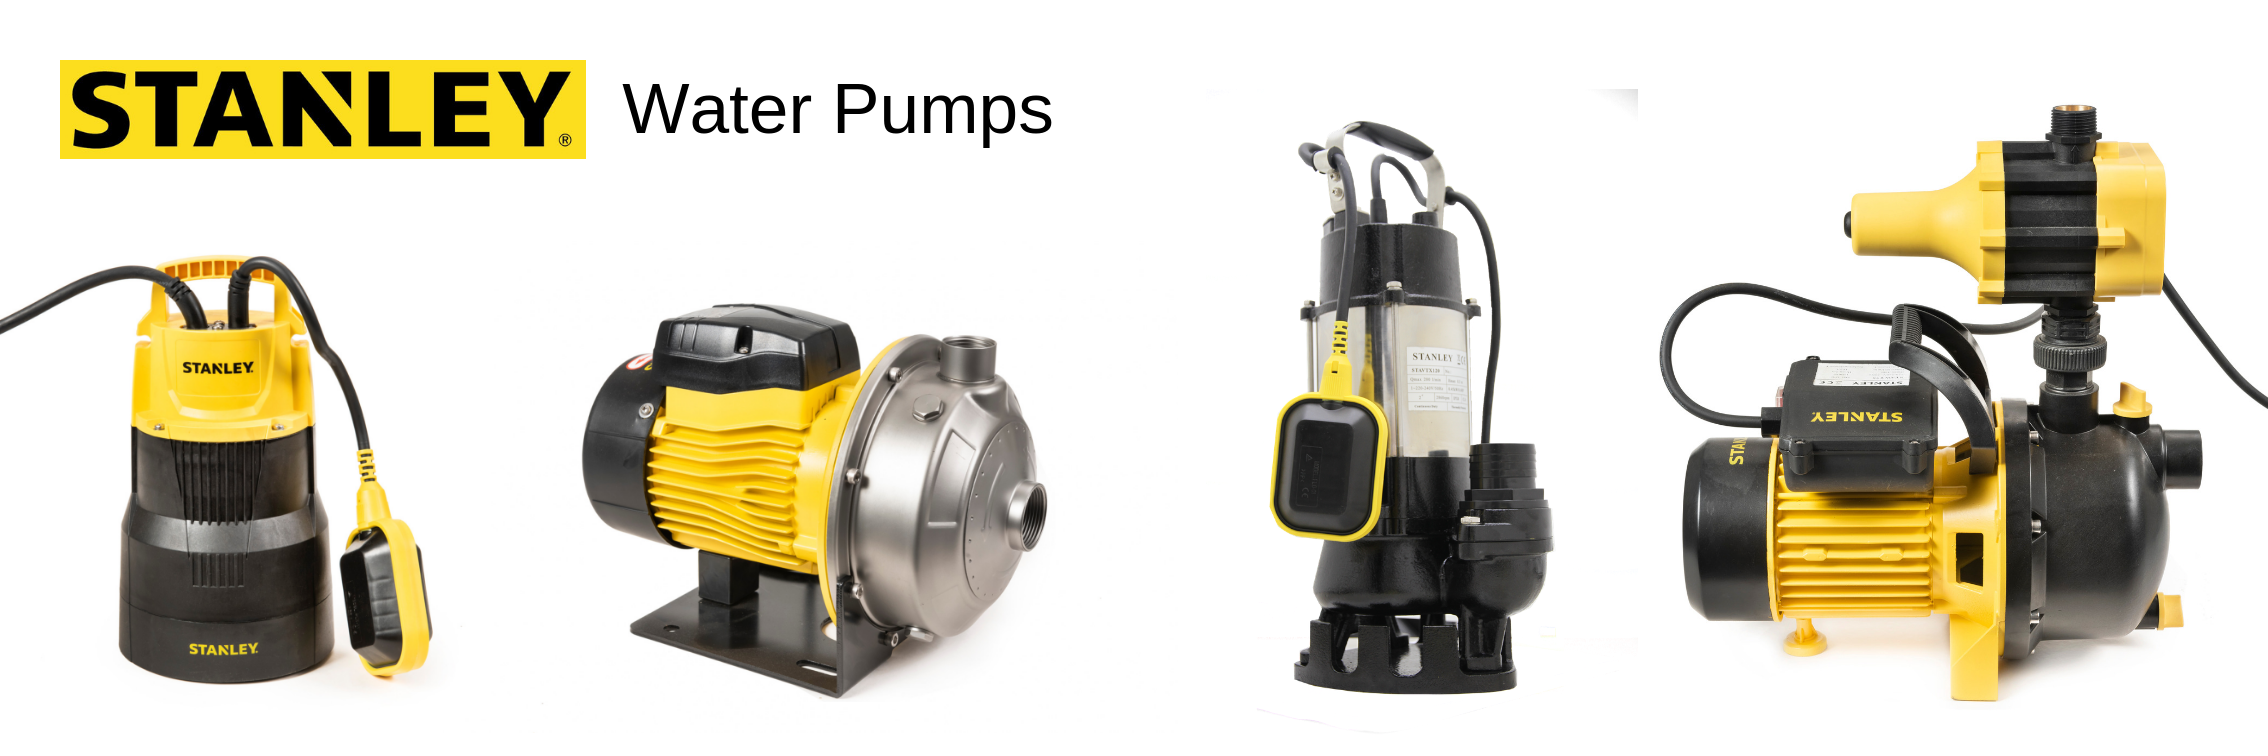 A range of water pumps from Stanley available from Perkinz Farming products